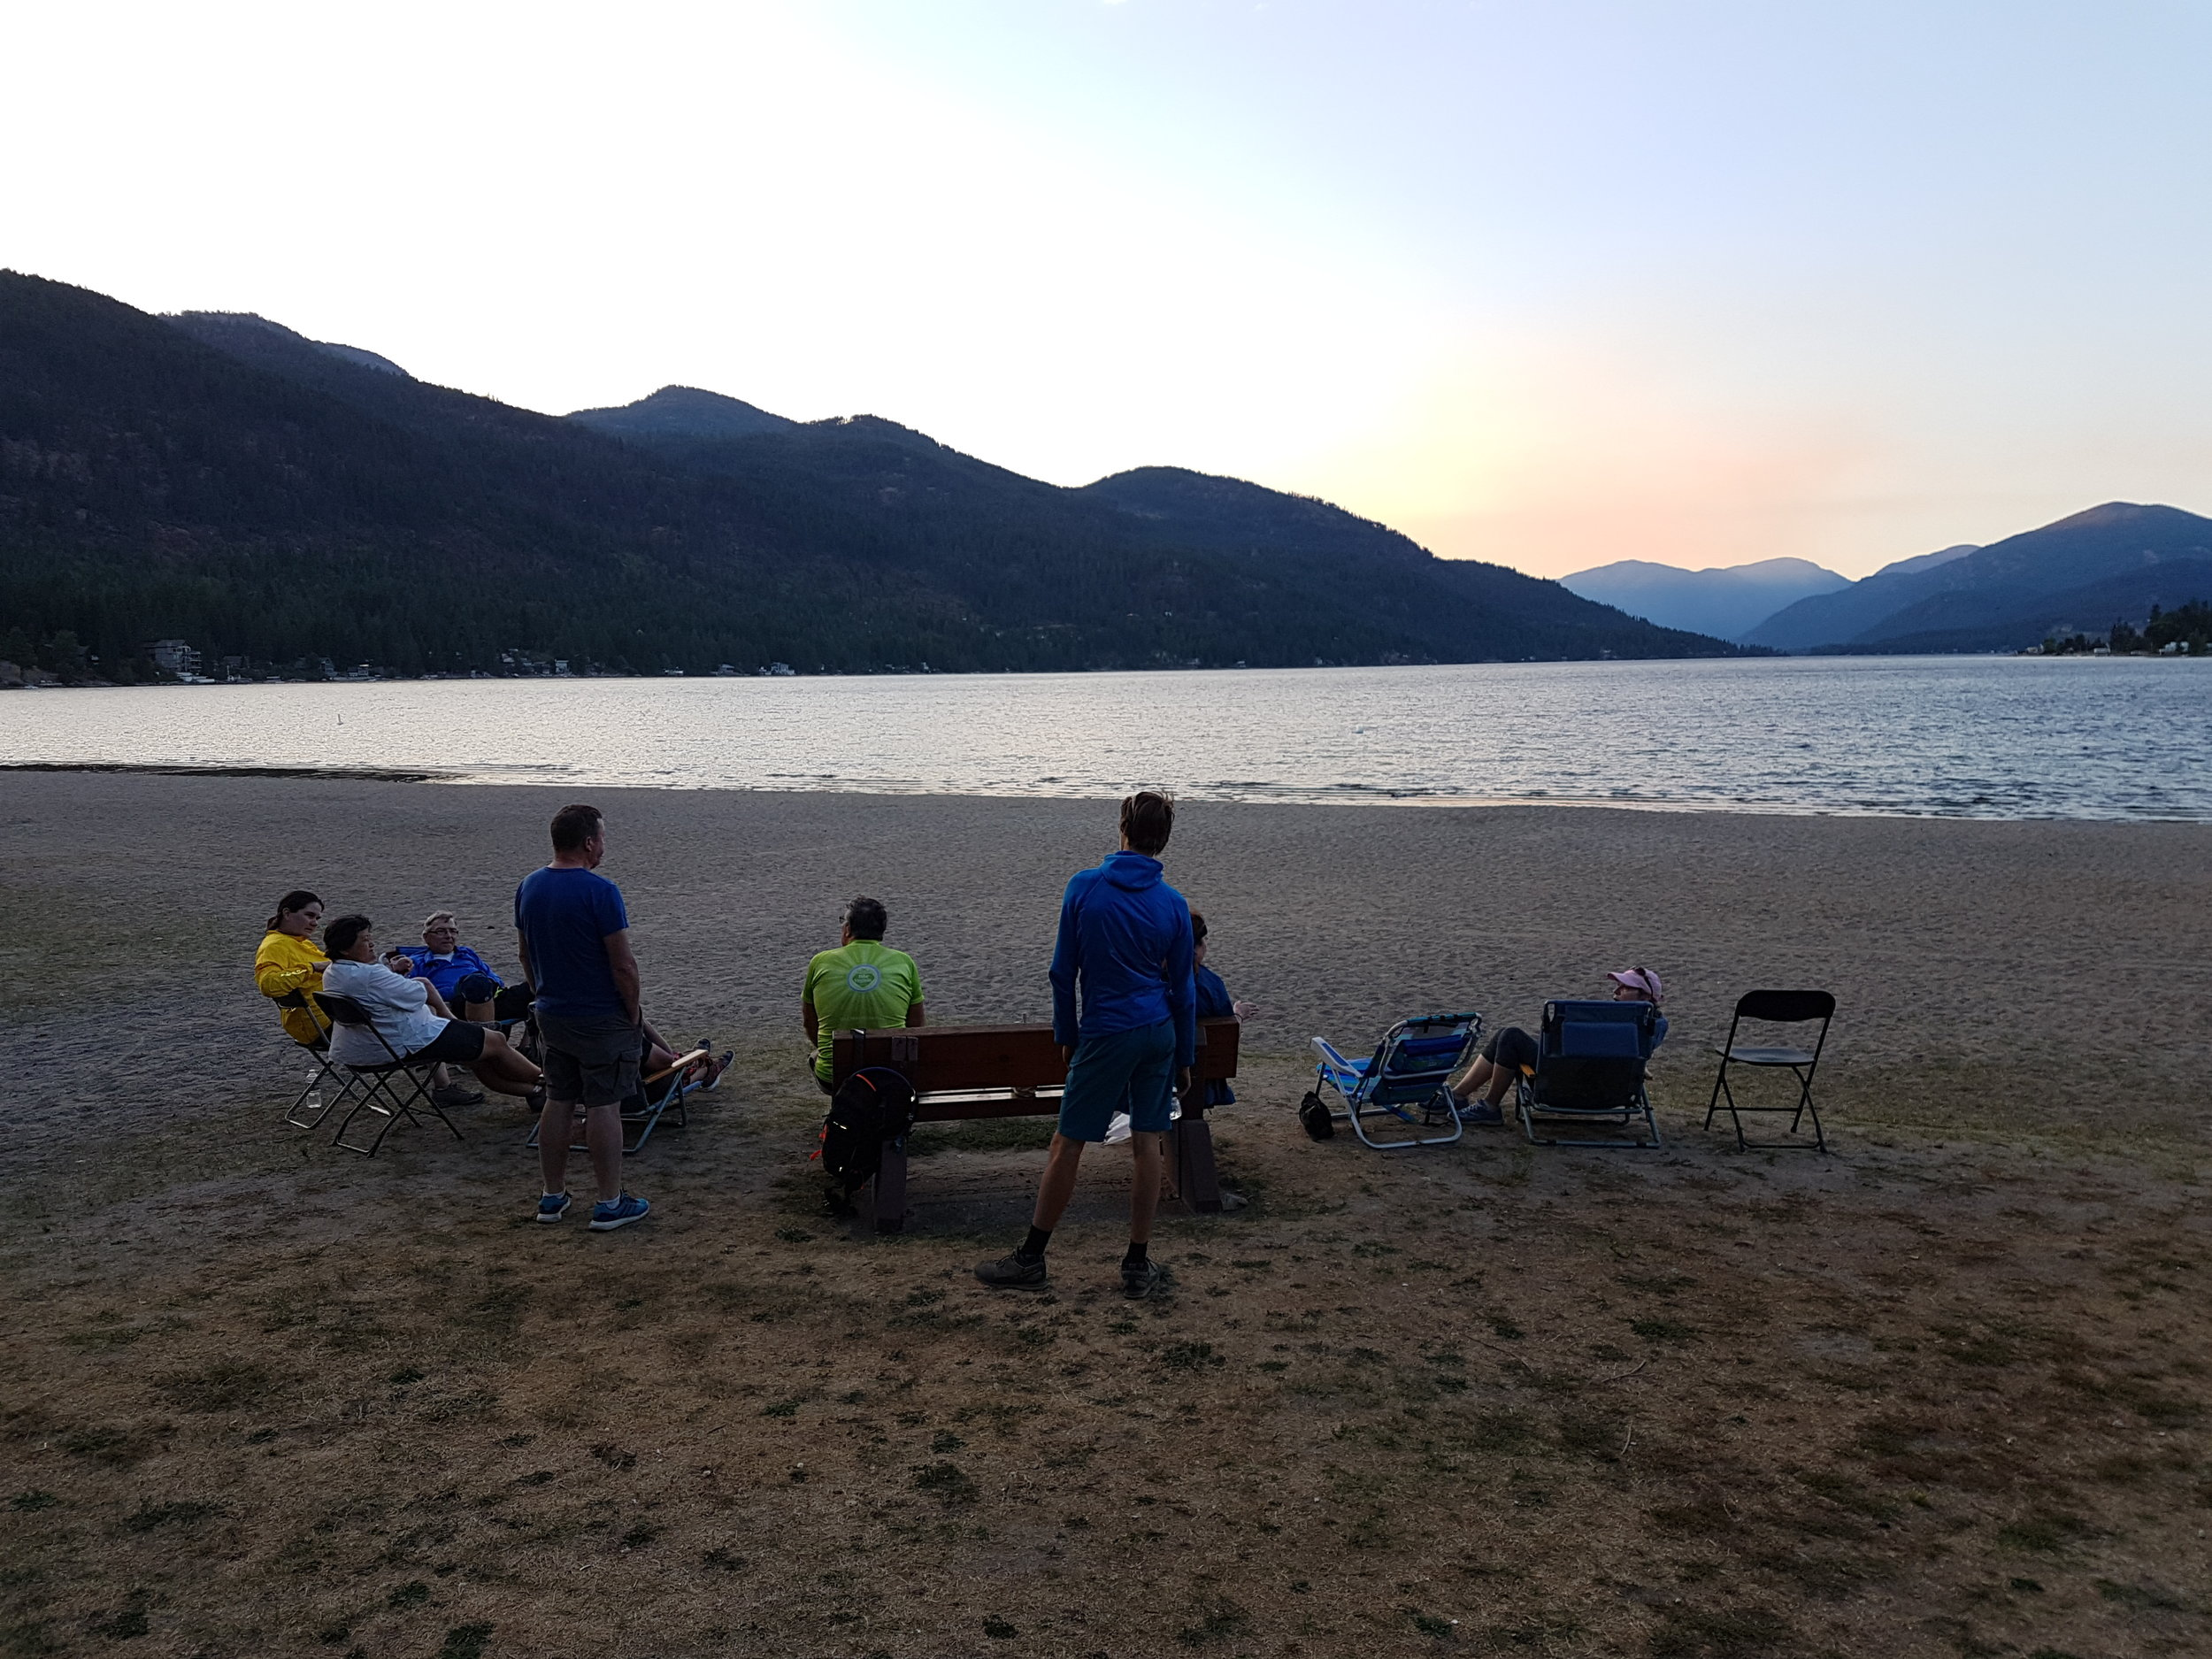 Enjoying the sunset at Christina lake during our multiday bike tours